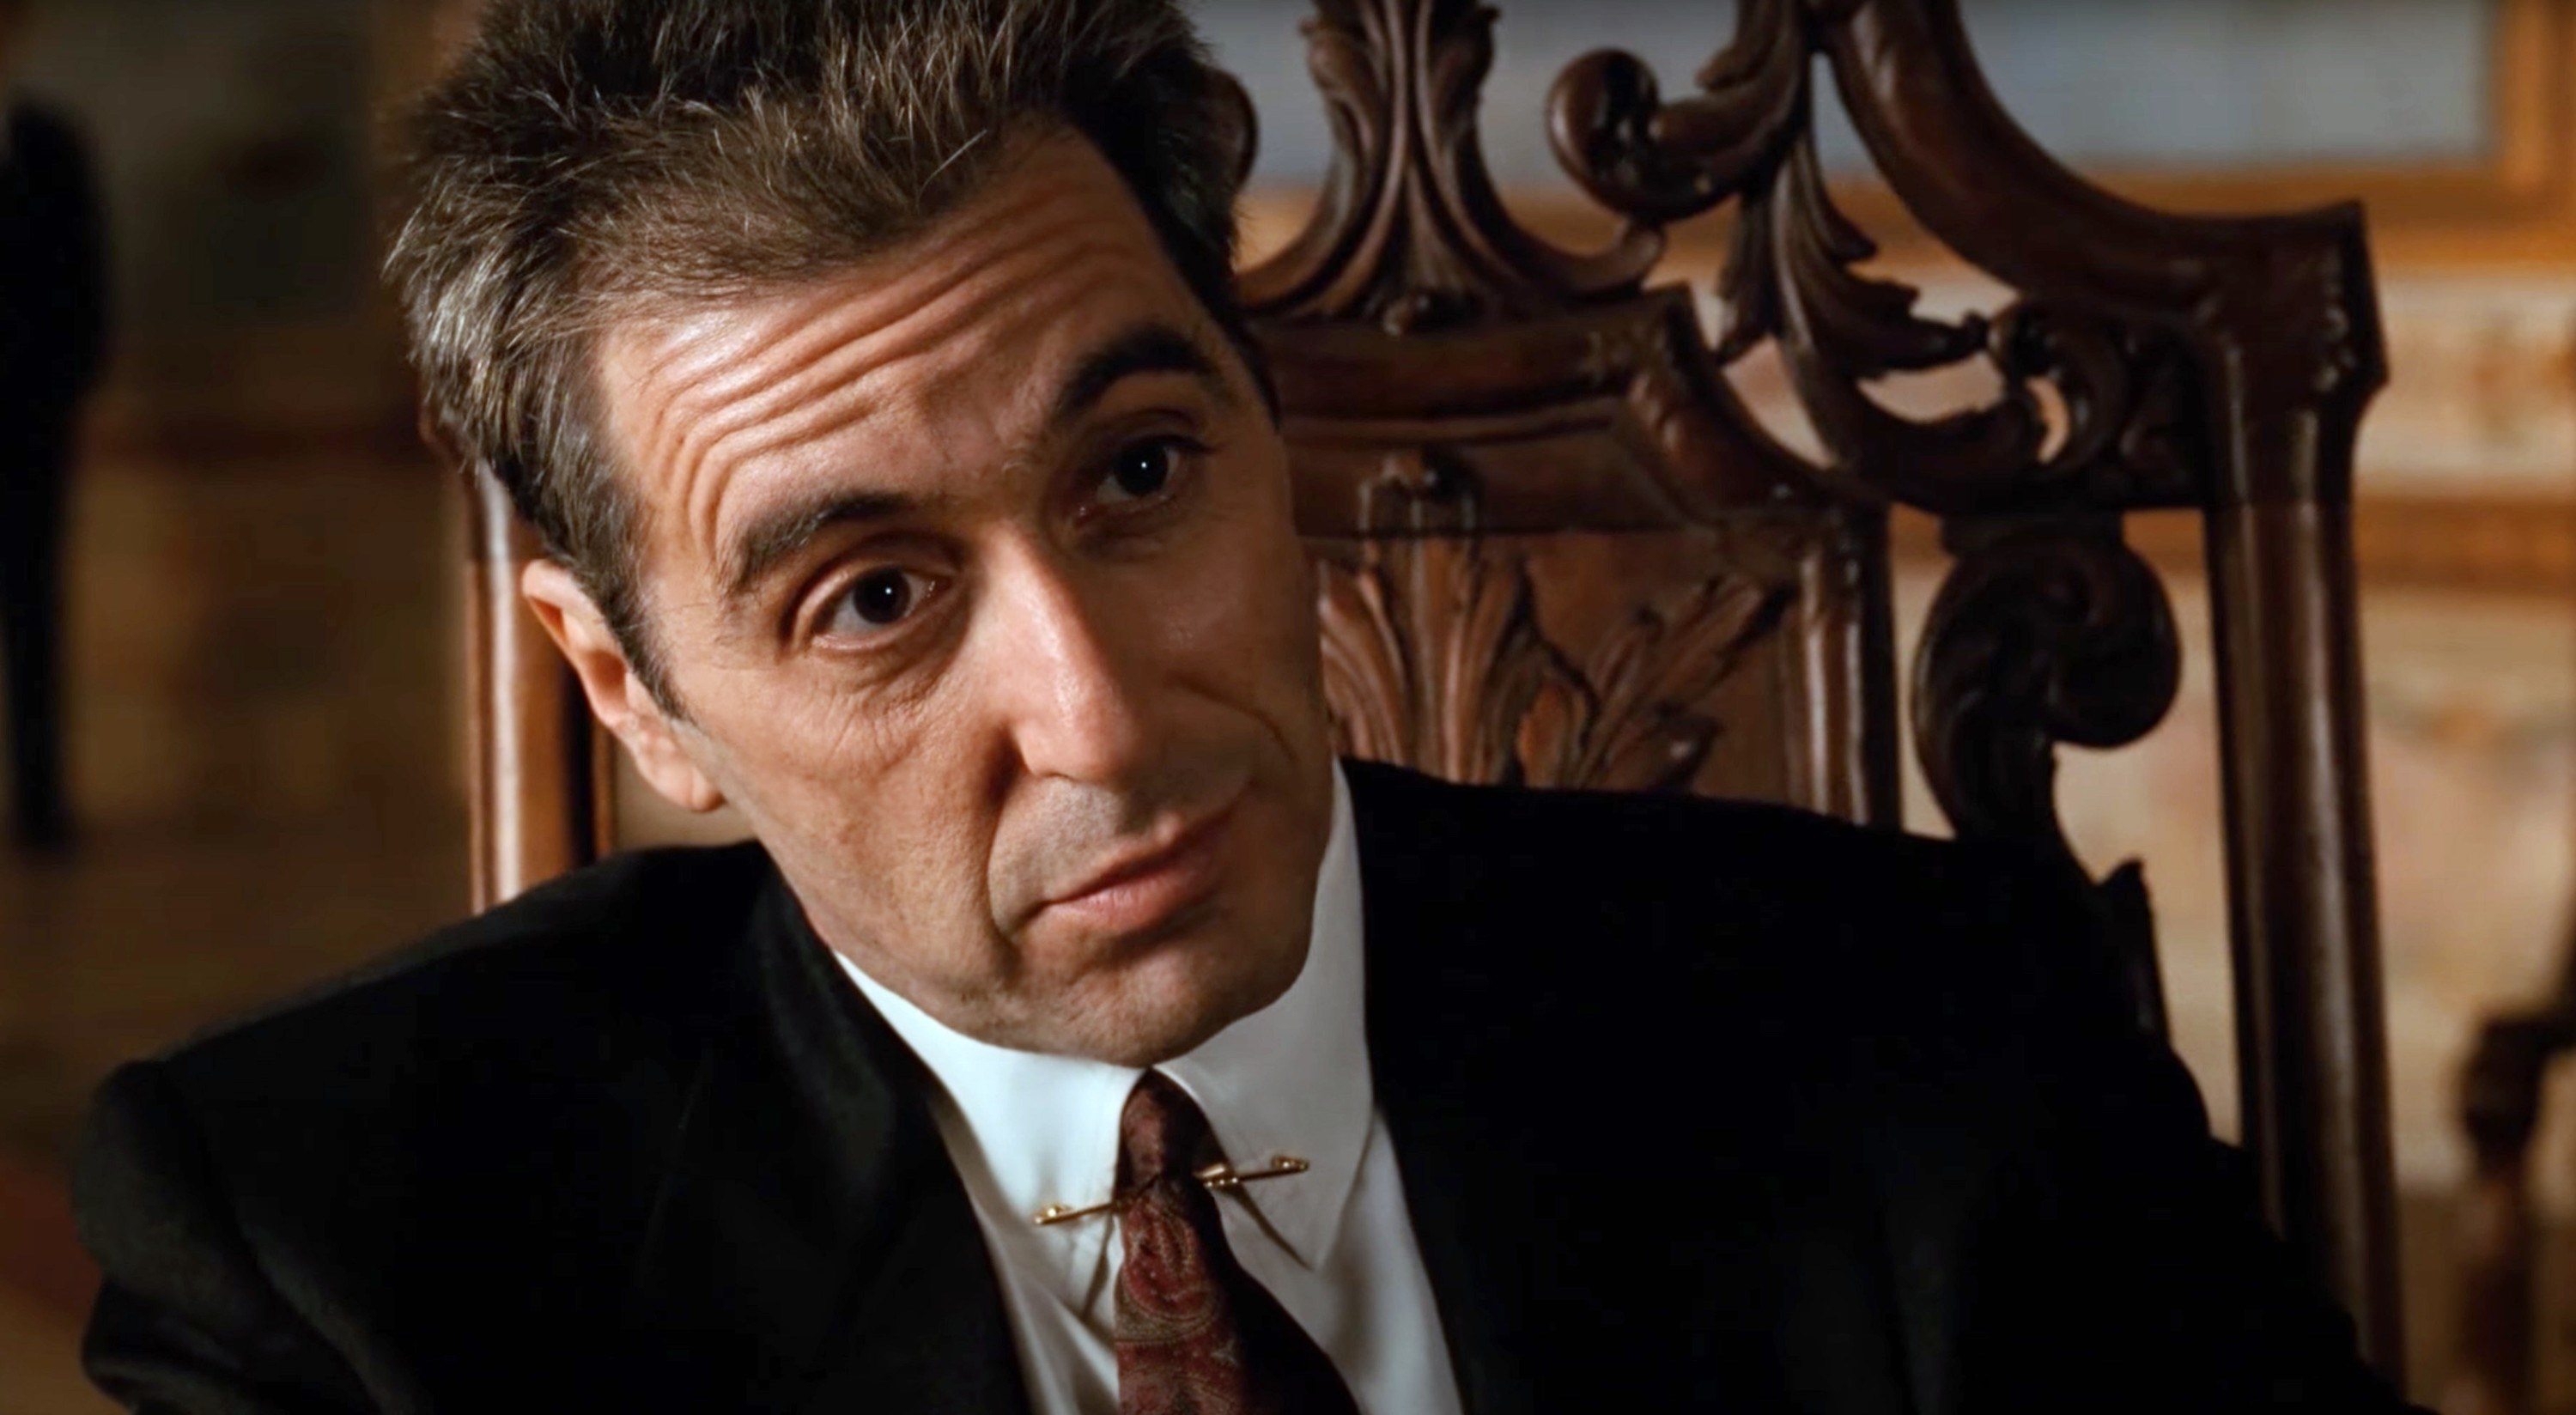 """Al Pacino as Michael Corleone in """"The Godfather Part III"""""""